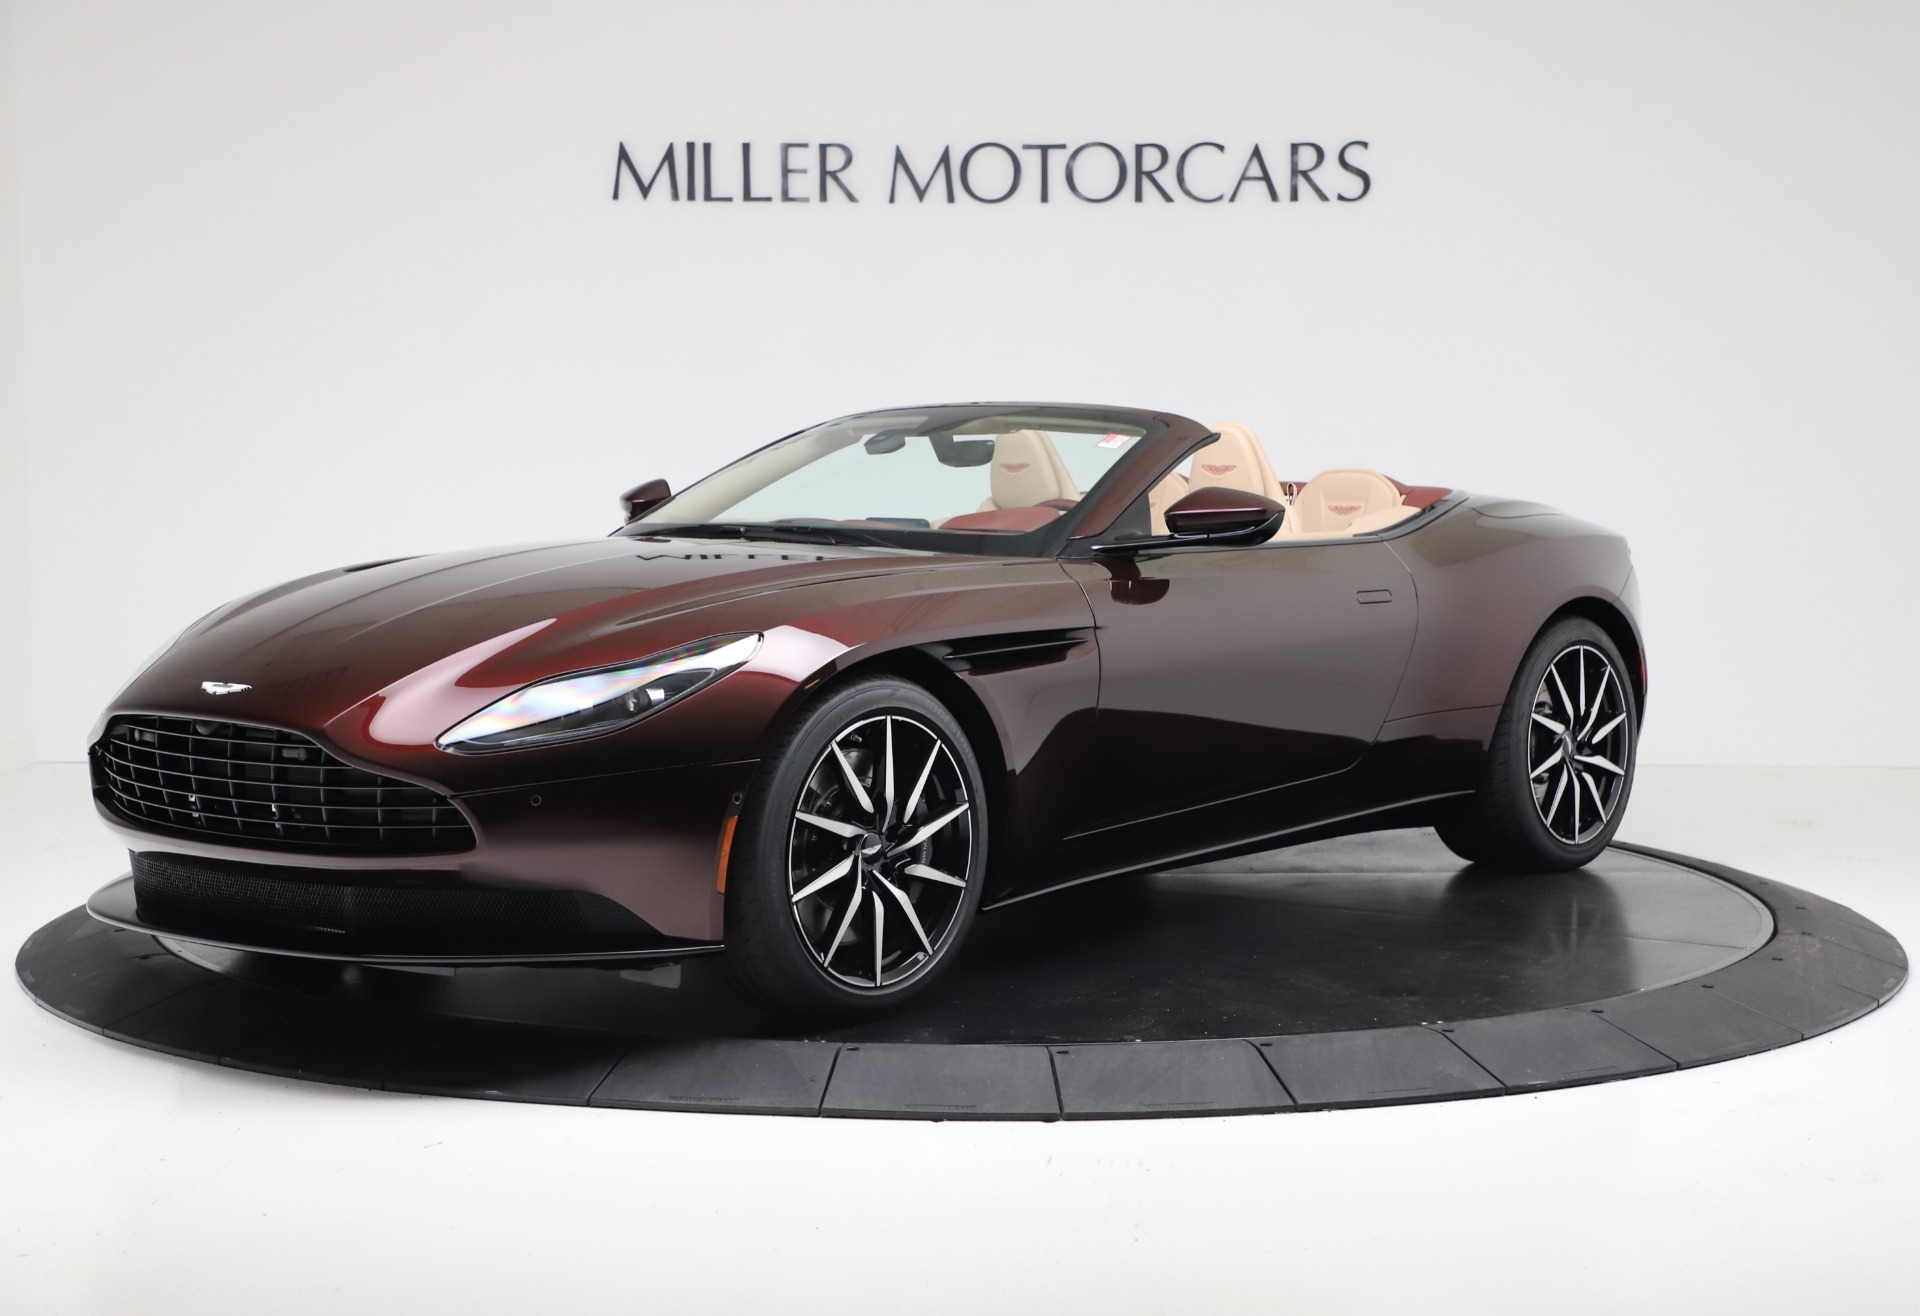 Used 2020 Aston Martin DB11 Volante Convertible for sale $223,900 at Alfa Romeo of Westport in Westport CT 06880 1